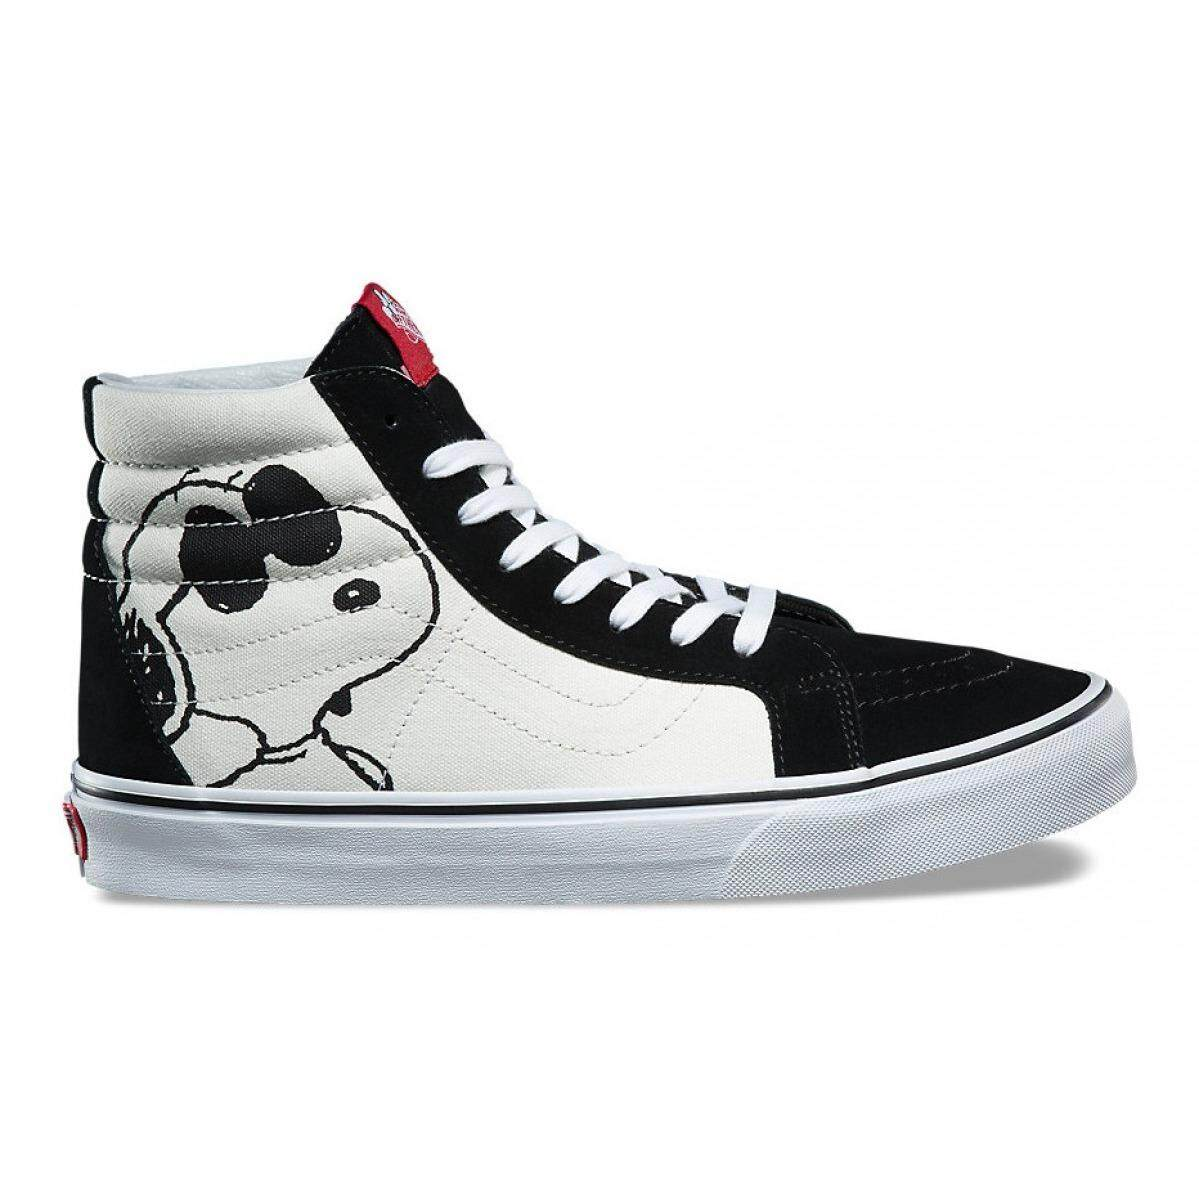 VANS รองเท้า แฟชั่น แวน M CV Shoes SK8-Hi Reissue Peanuts Joe Cool/Black VN0A2XSBOQU (4500)